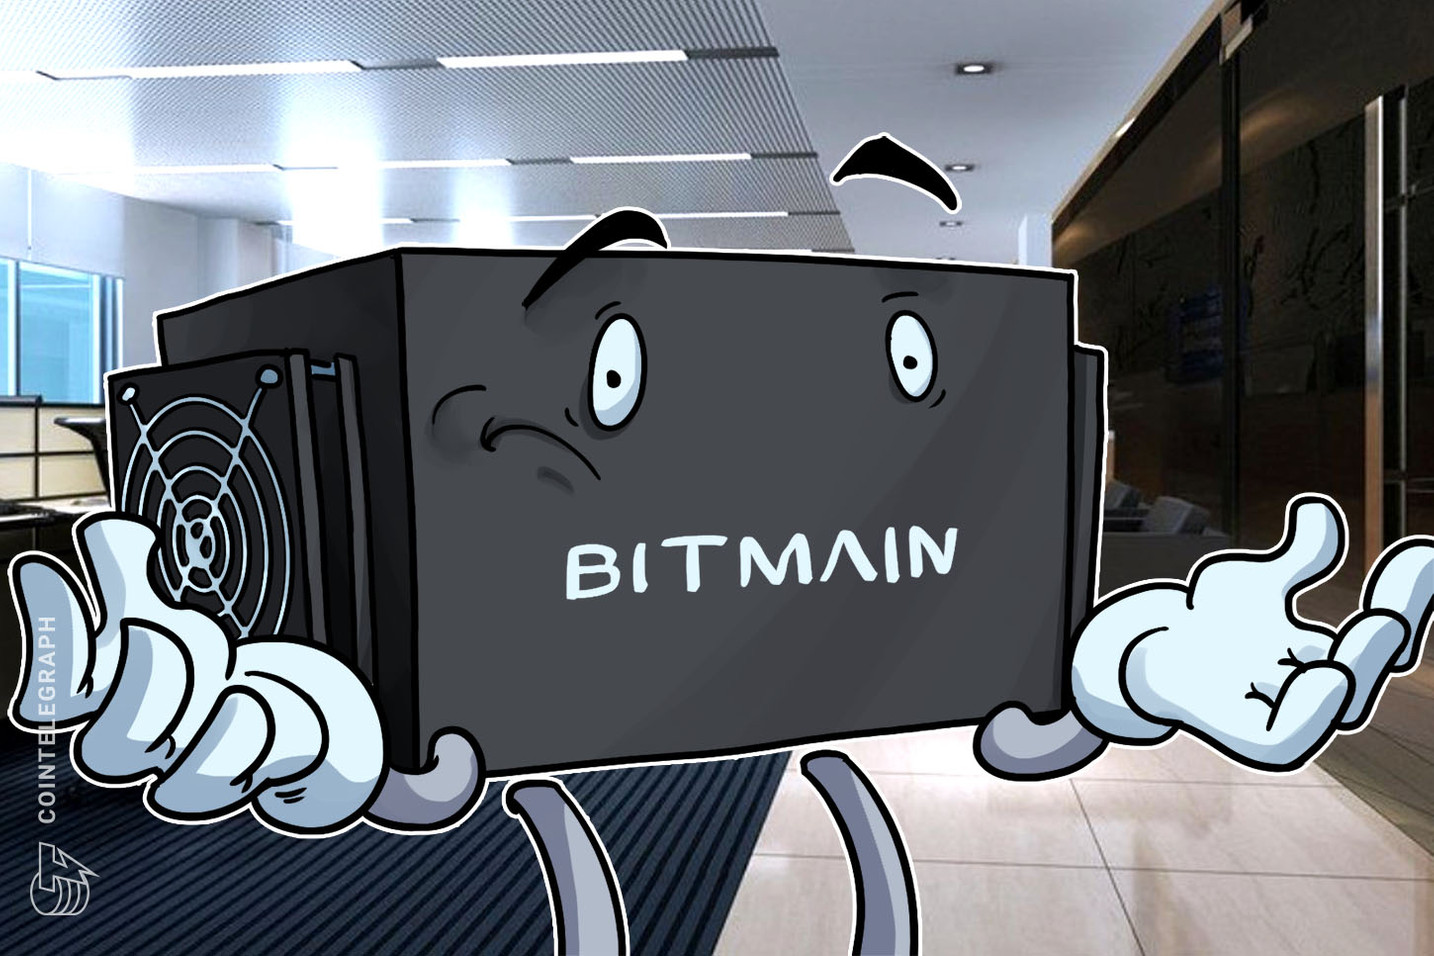 Micree Zhan Reportedly Used Private Guards to Physically Take Over Bitmain